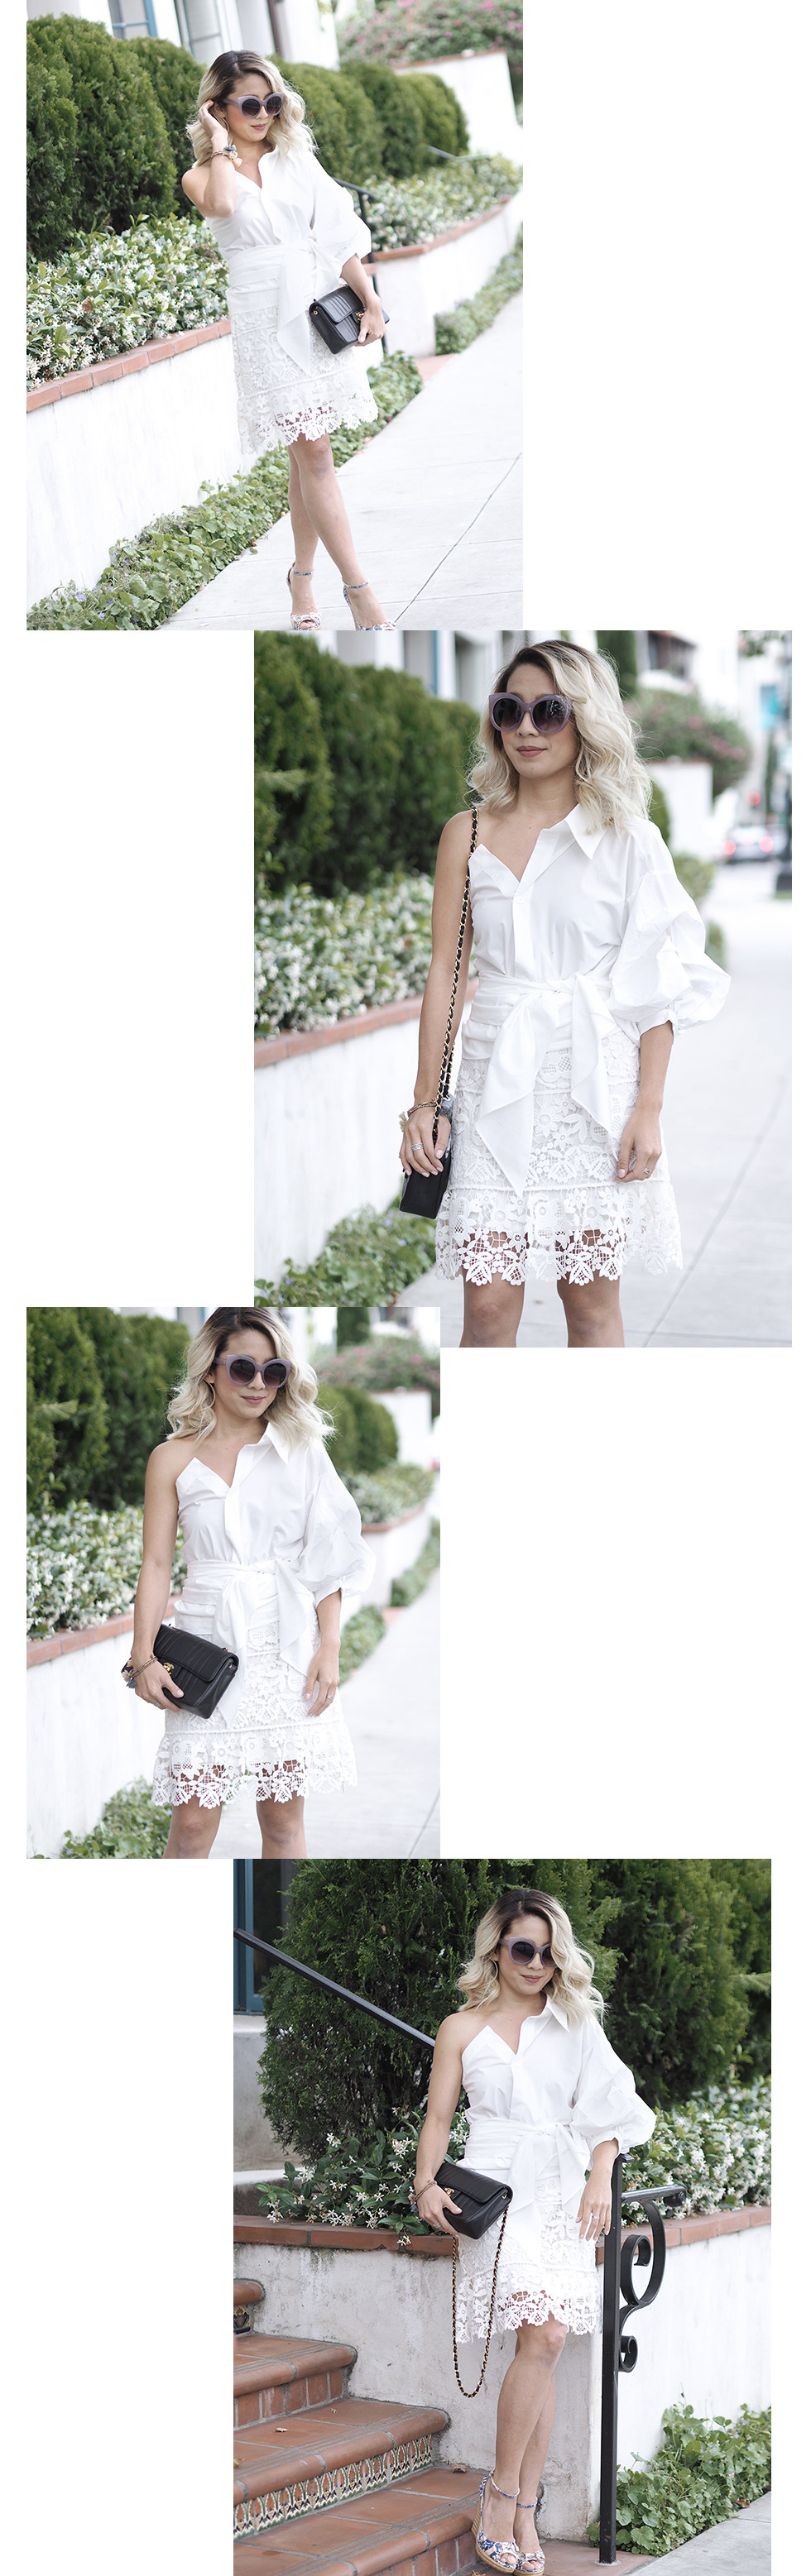 Summer Whites | Lam in Louboutins